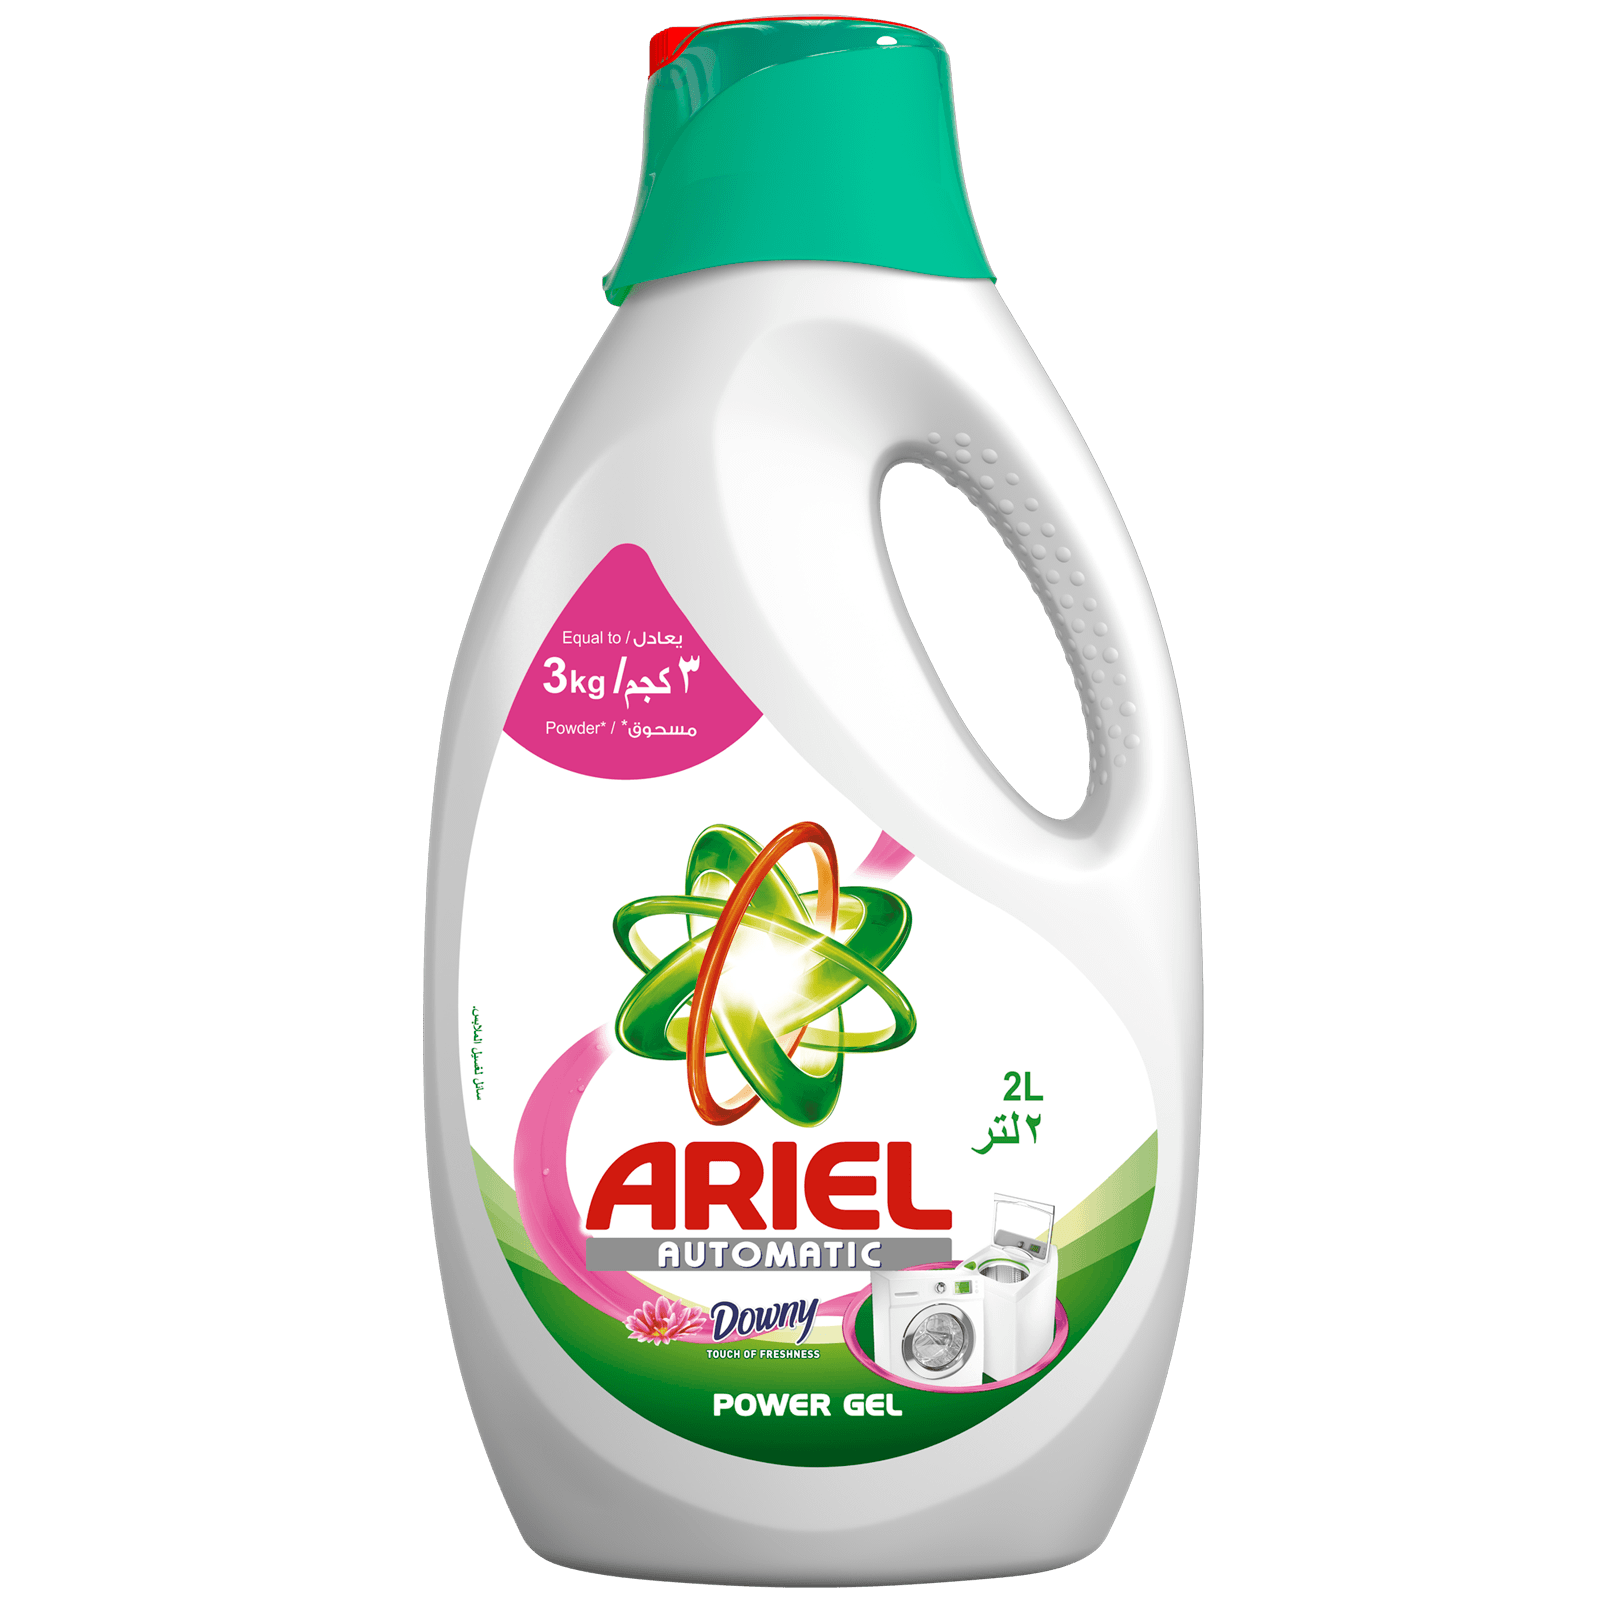 Ariel Automatic Power Gel with a Touch of Downy